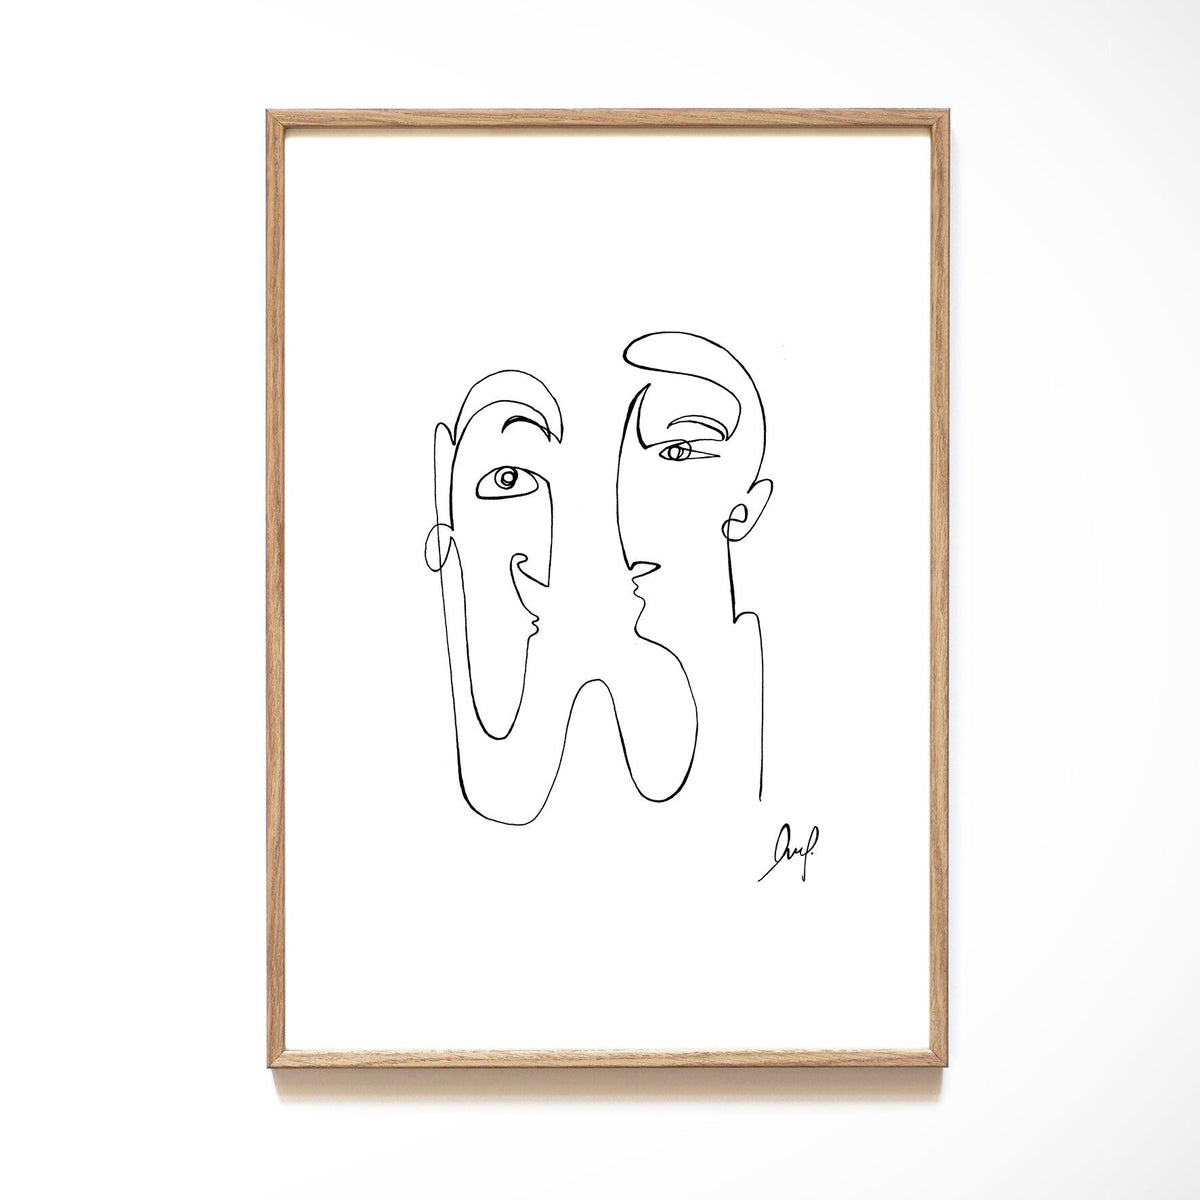 Kunstdruck - ART LINE - COUPLE Kunstdruck Leo la Douce